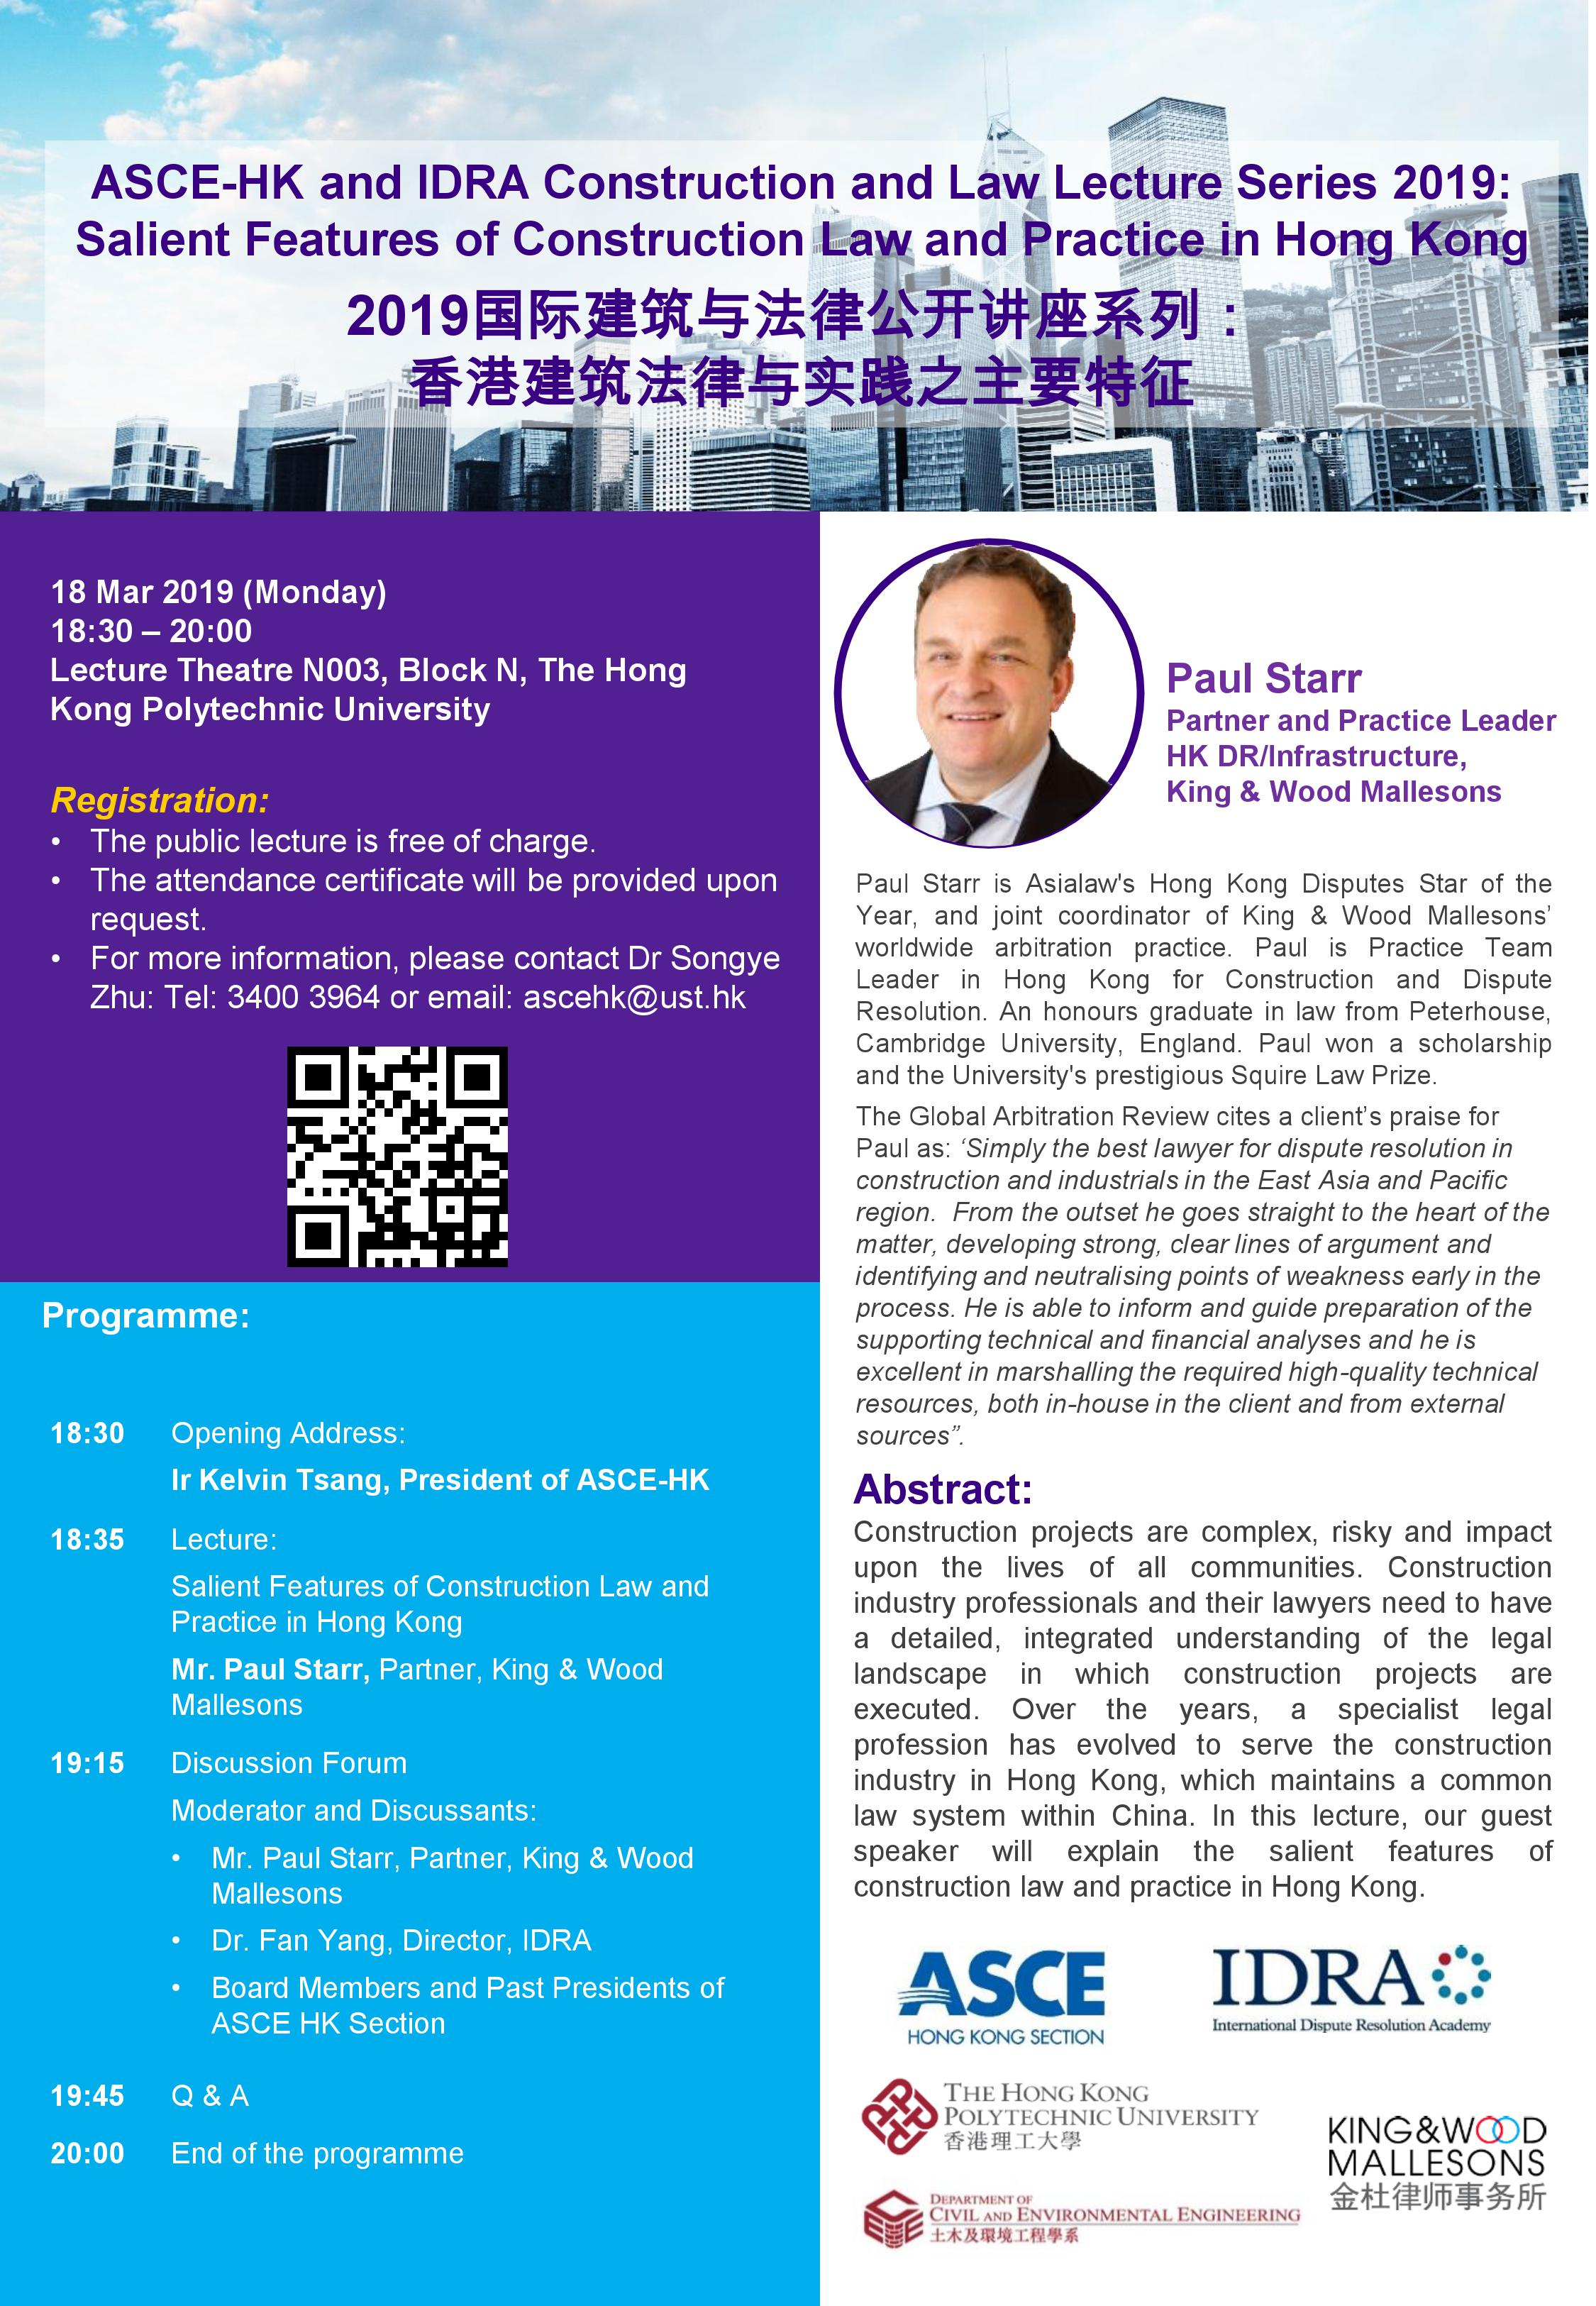 ASCE-HK and IDRA Construction and Law Lecture Series 2019.jpg